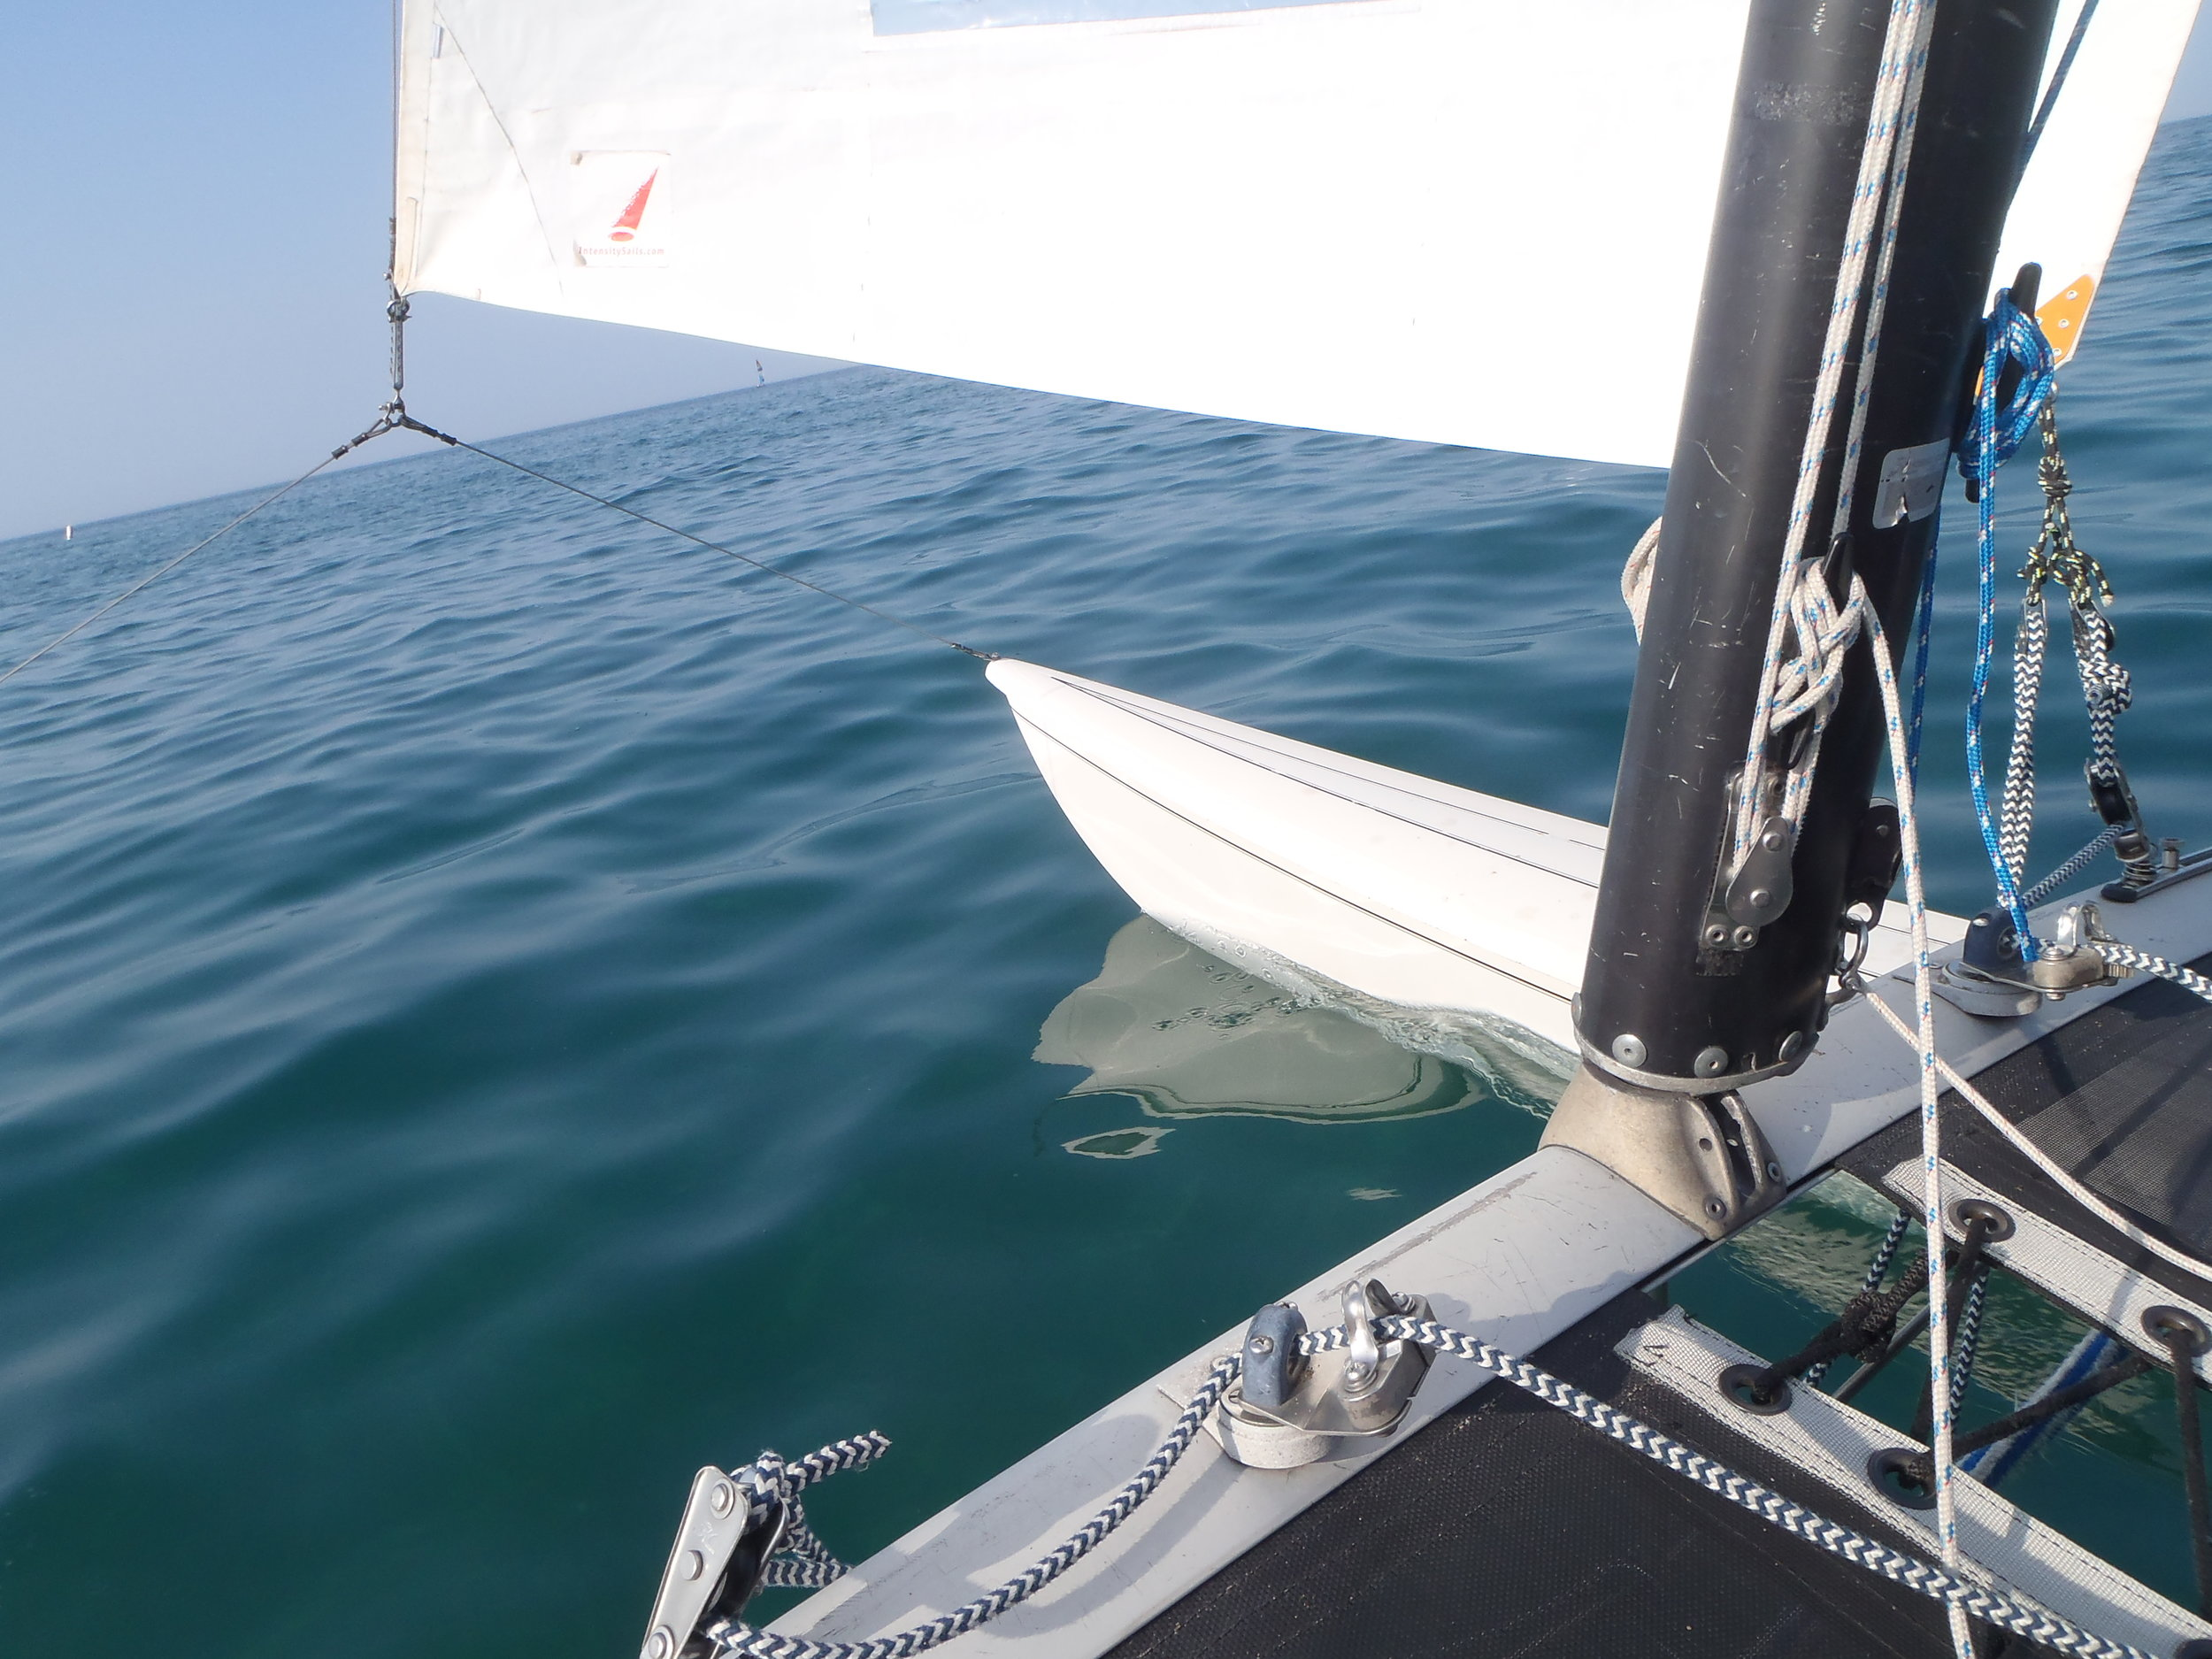 Full Sails Ahead - Sailing on Lake Michigan. Photo: Emily George